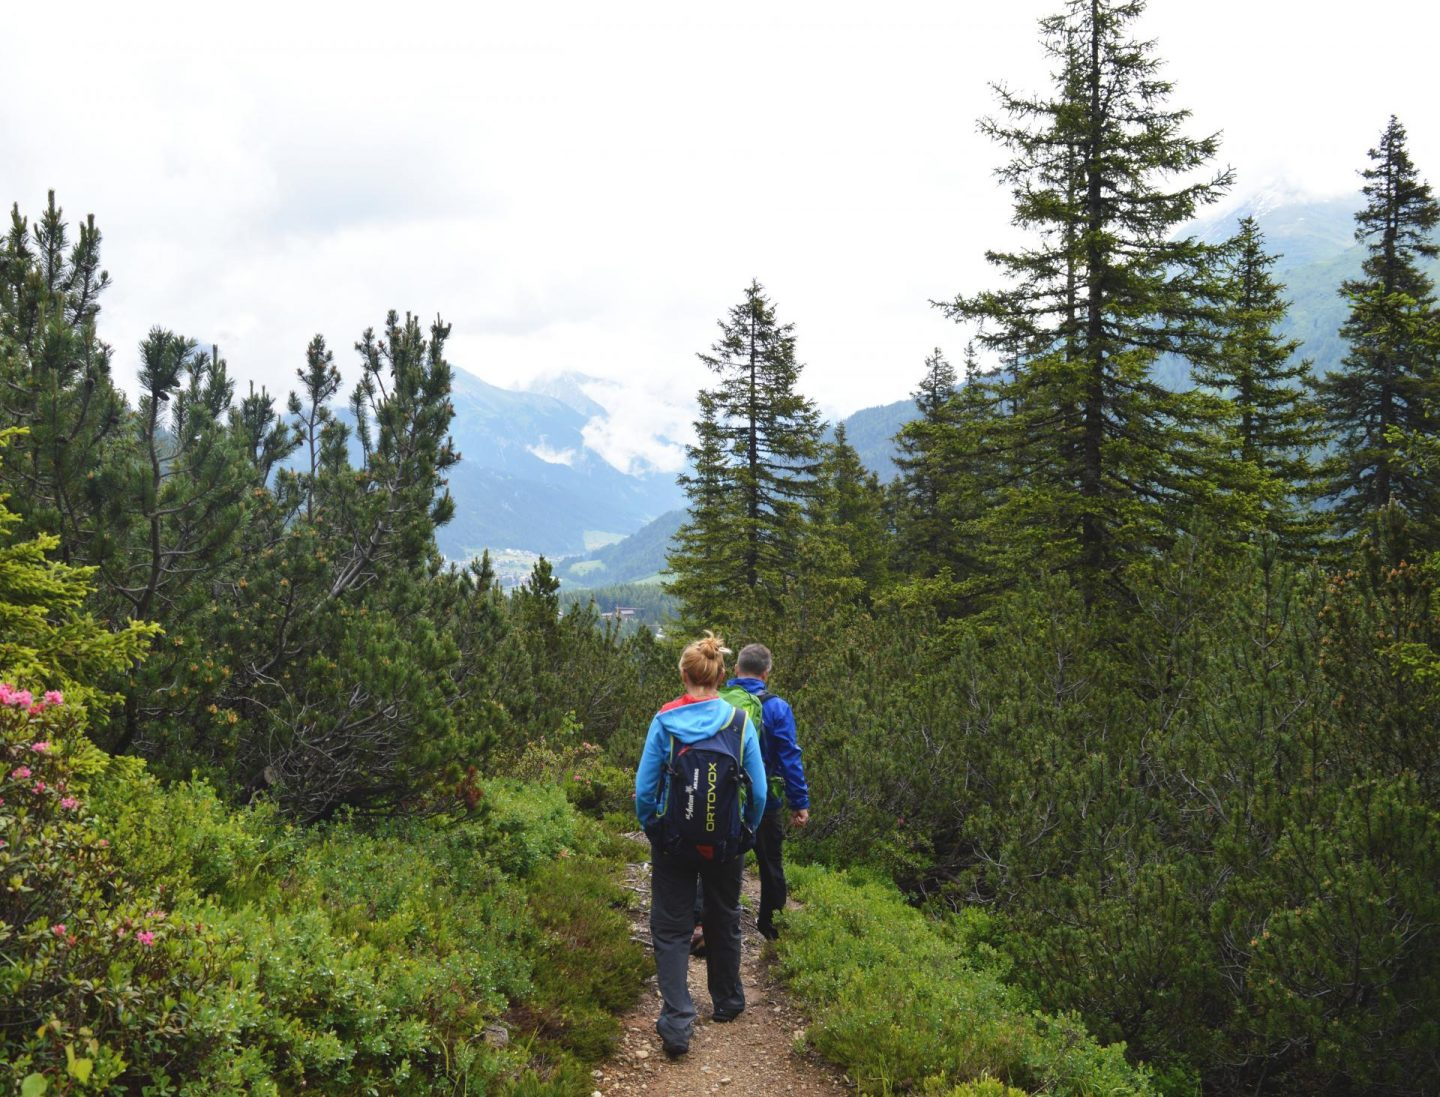 How Hiking Can Make You Happy | Walking For Mental & Physical Health